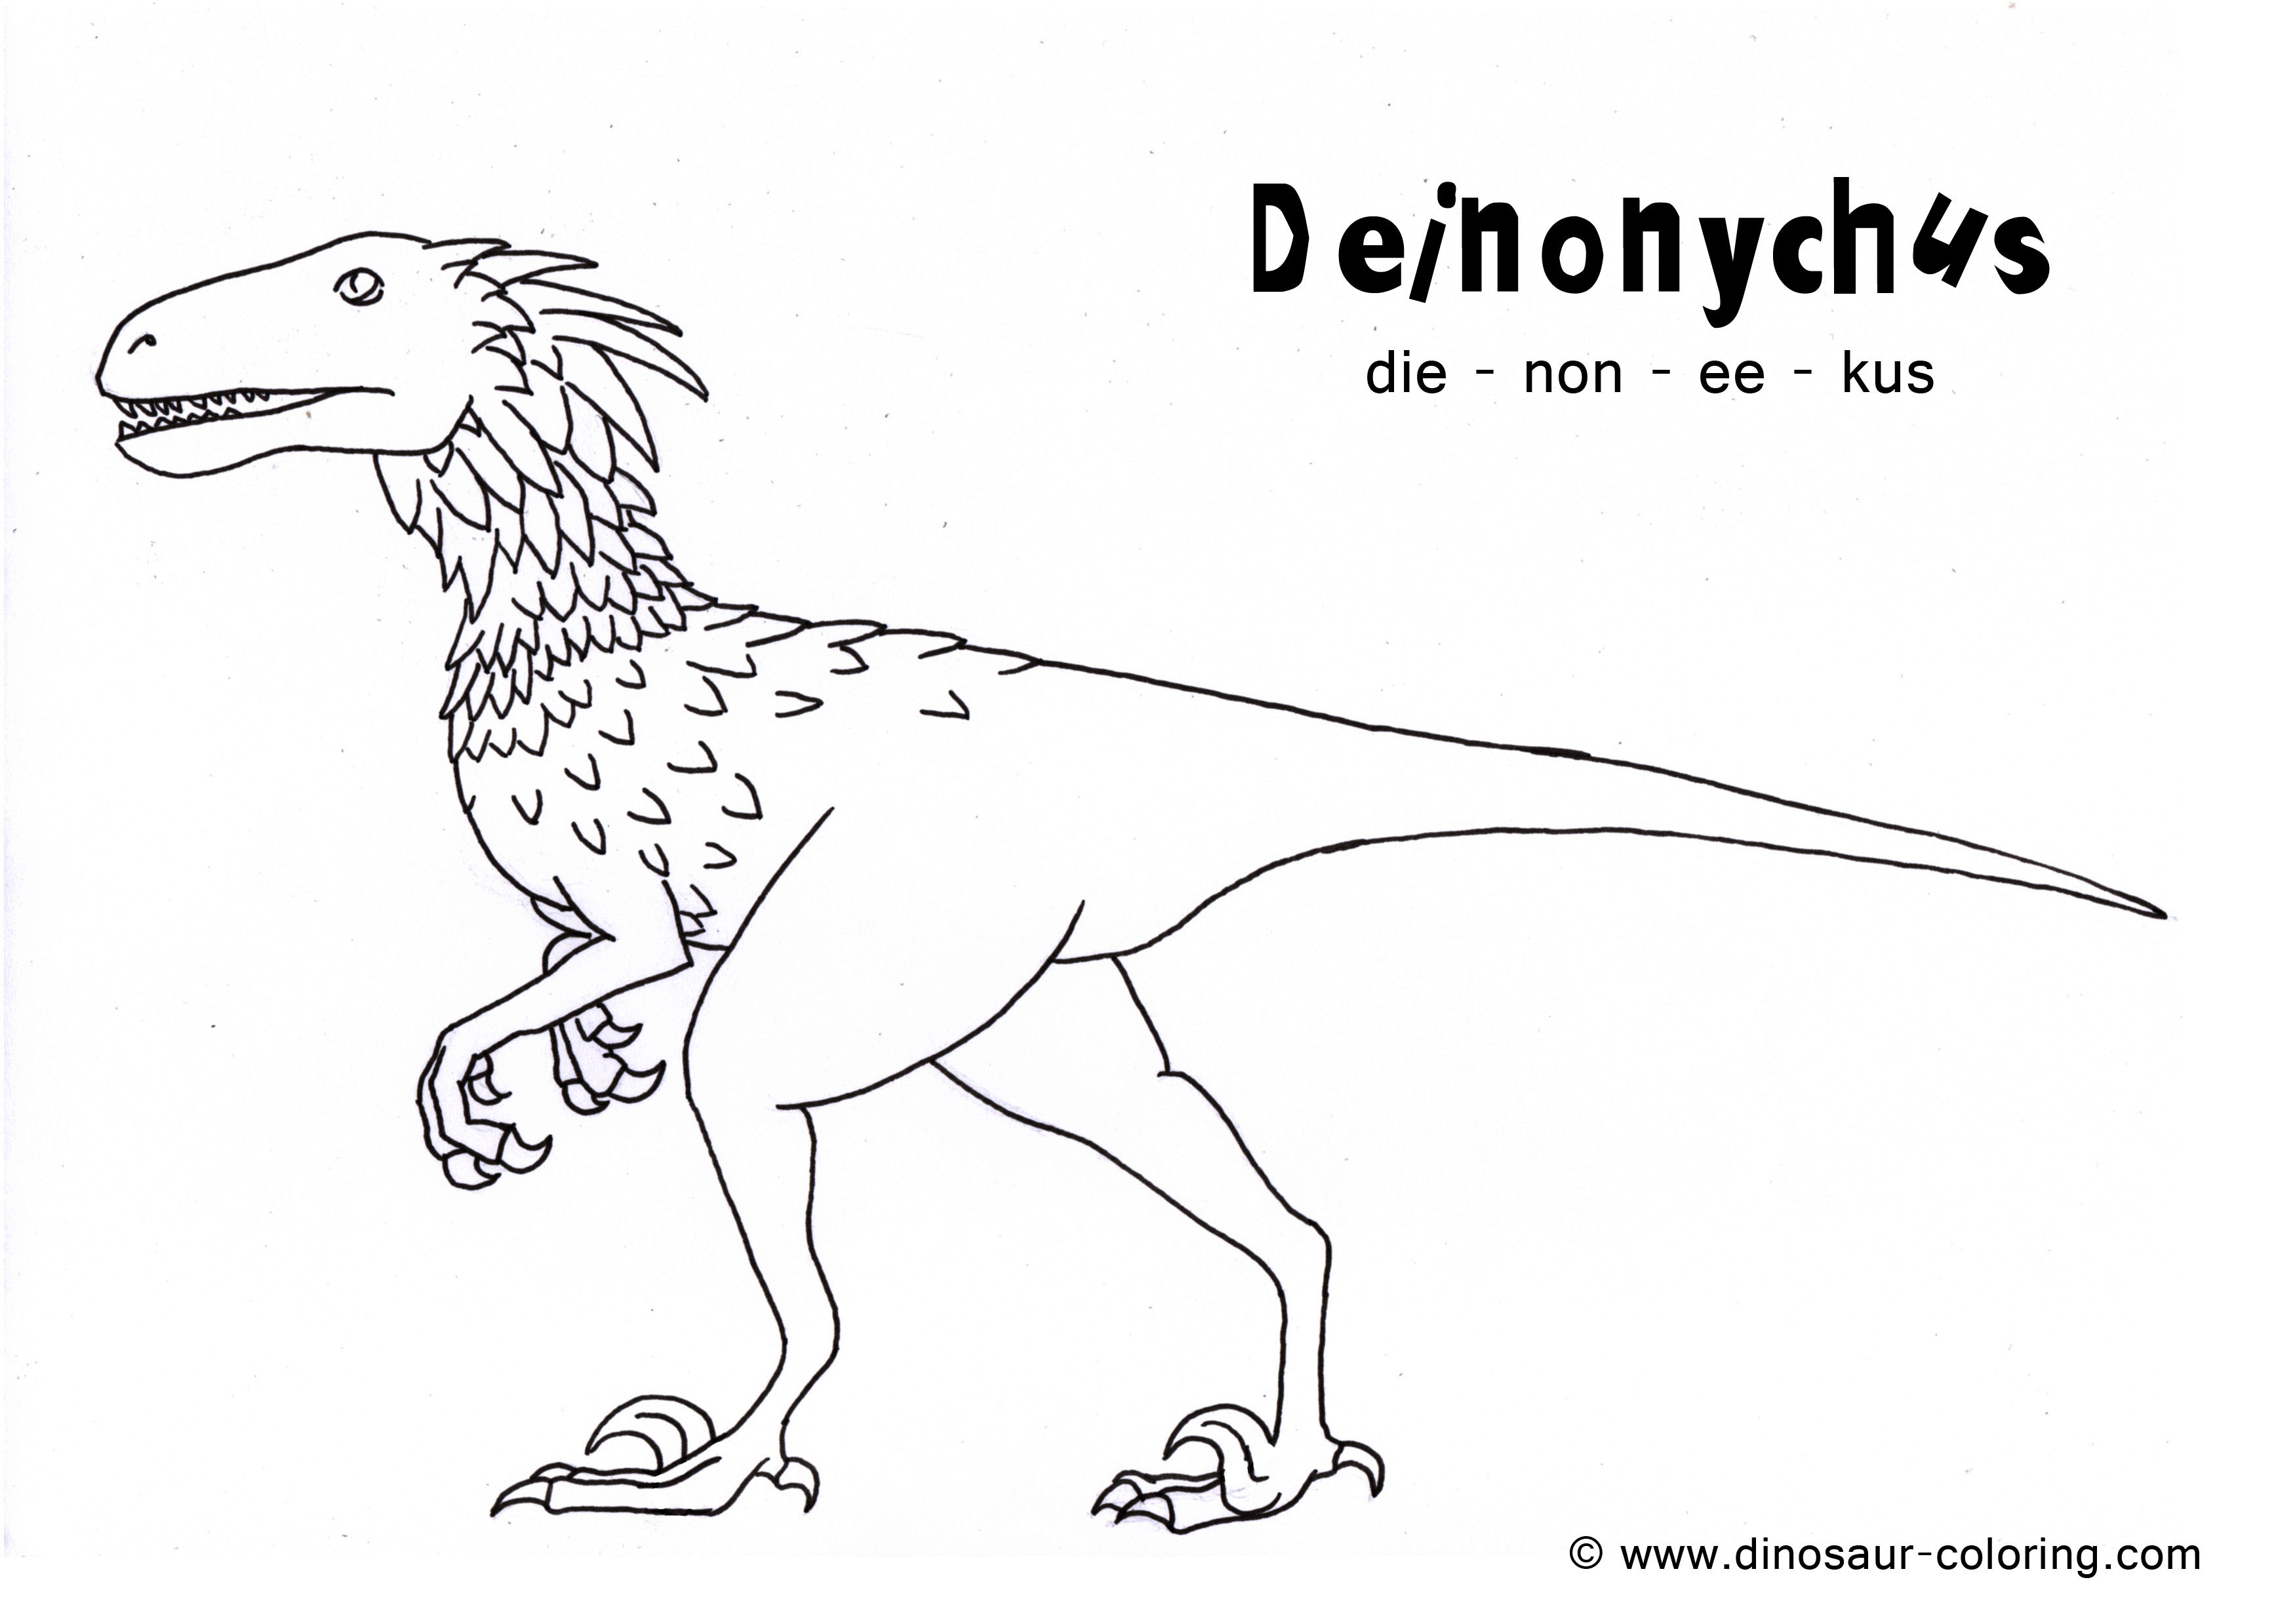 Coloring Pages Dinosuar Coloring Pages dinosaur coloring allosaurus ankylosaurus apatosaurus archaeopteryx borogovia brachiosaurus chaoyangsaurus compsognathus dacentrurus deinonychus